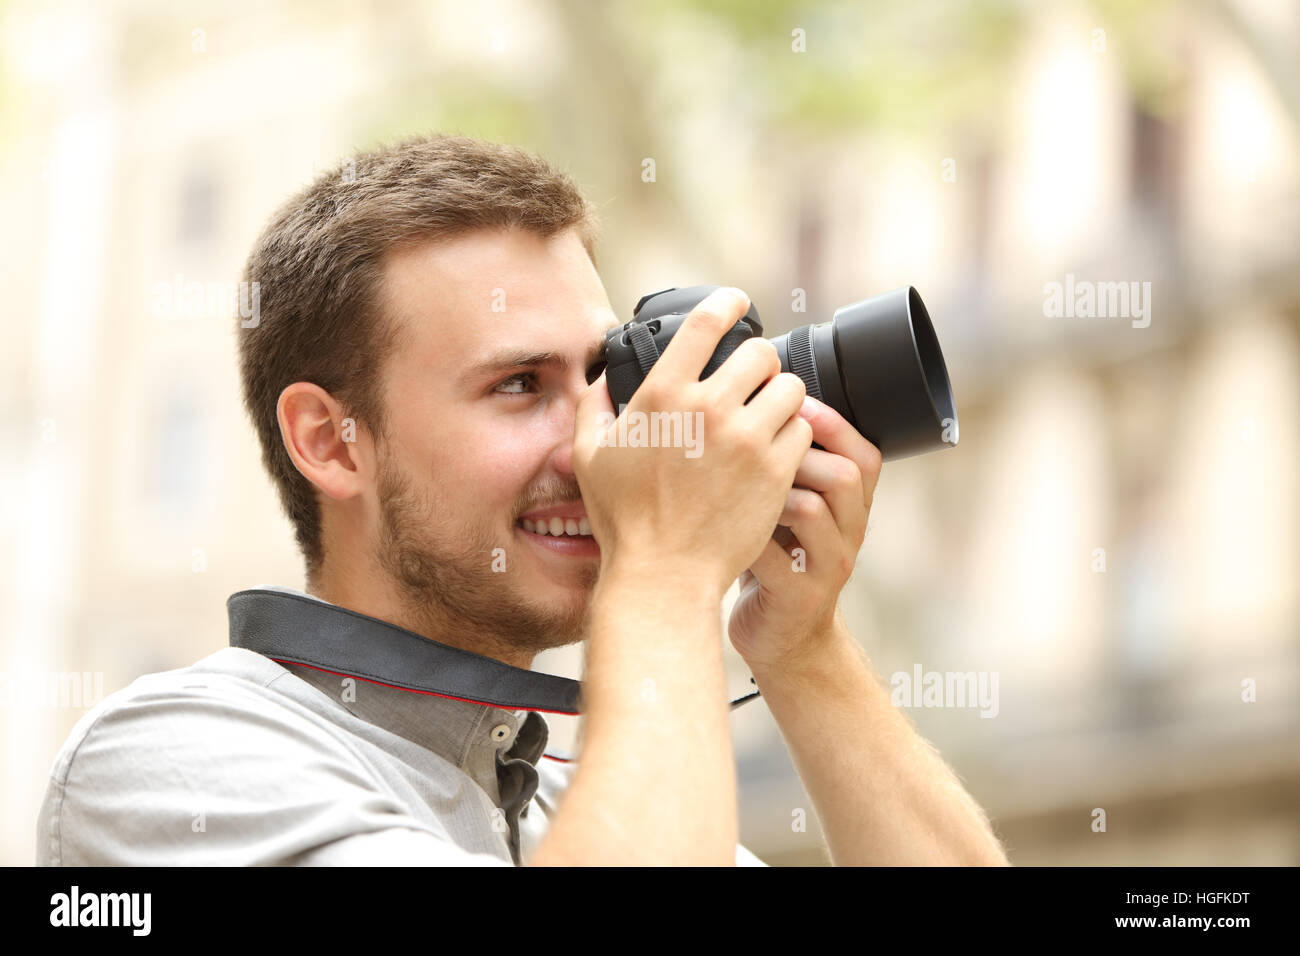 Side view of a happy man photographing with a dslr camera in the street of a city or town - Stock Image